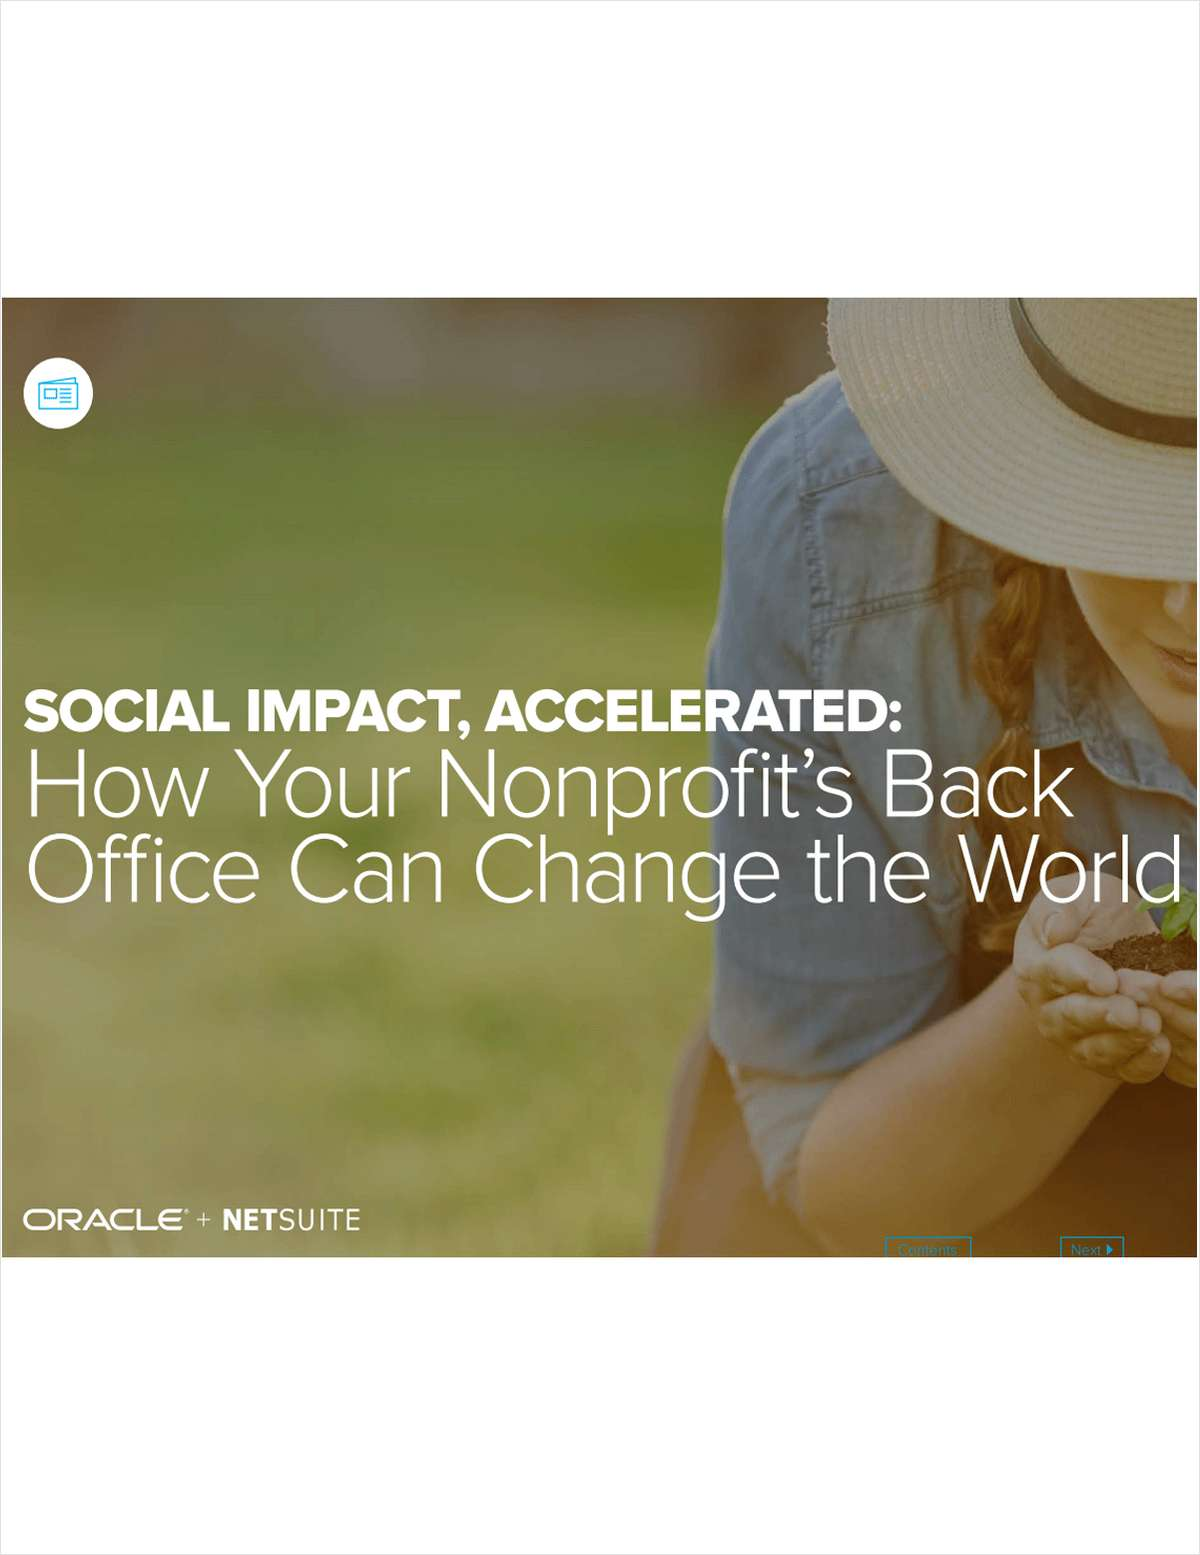 Social Impact Accelerated: How Your Nonprofit's Back Office Can Change The World